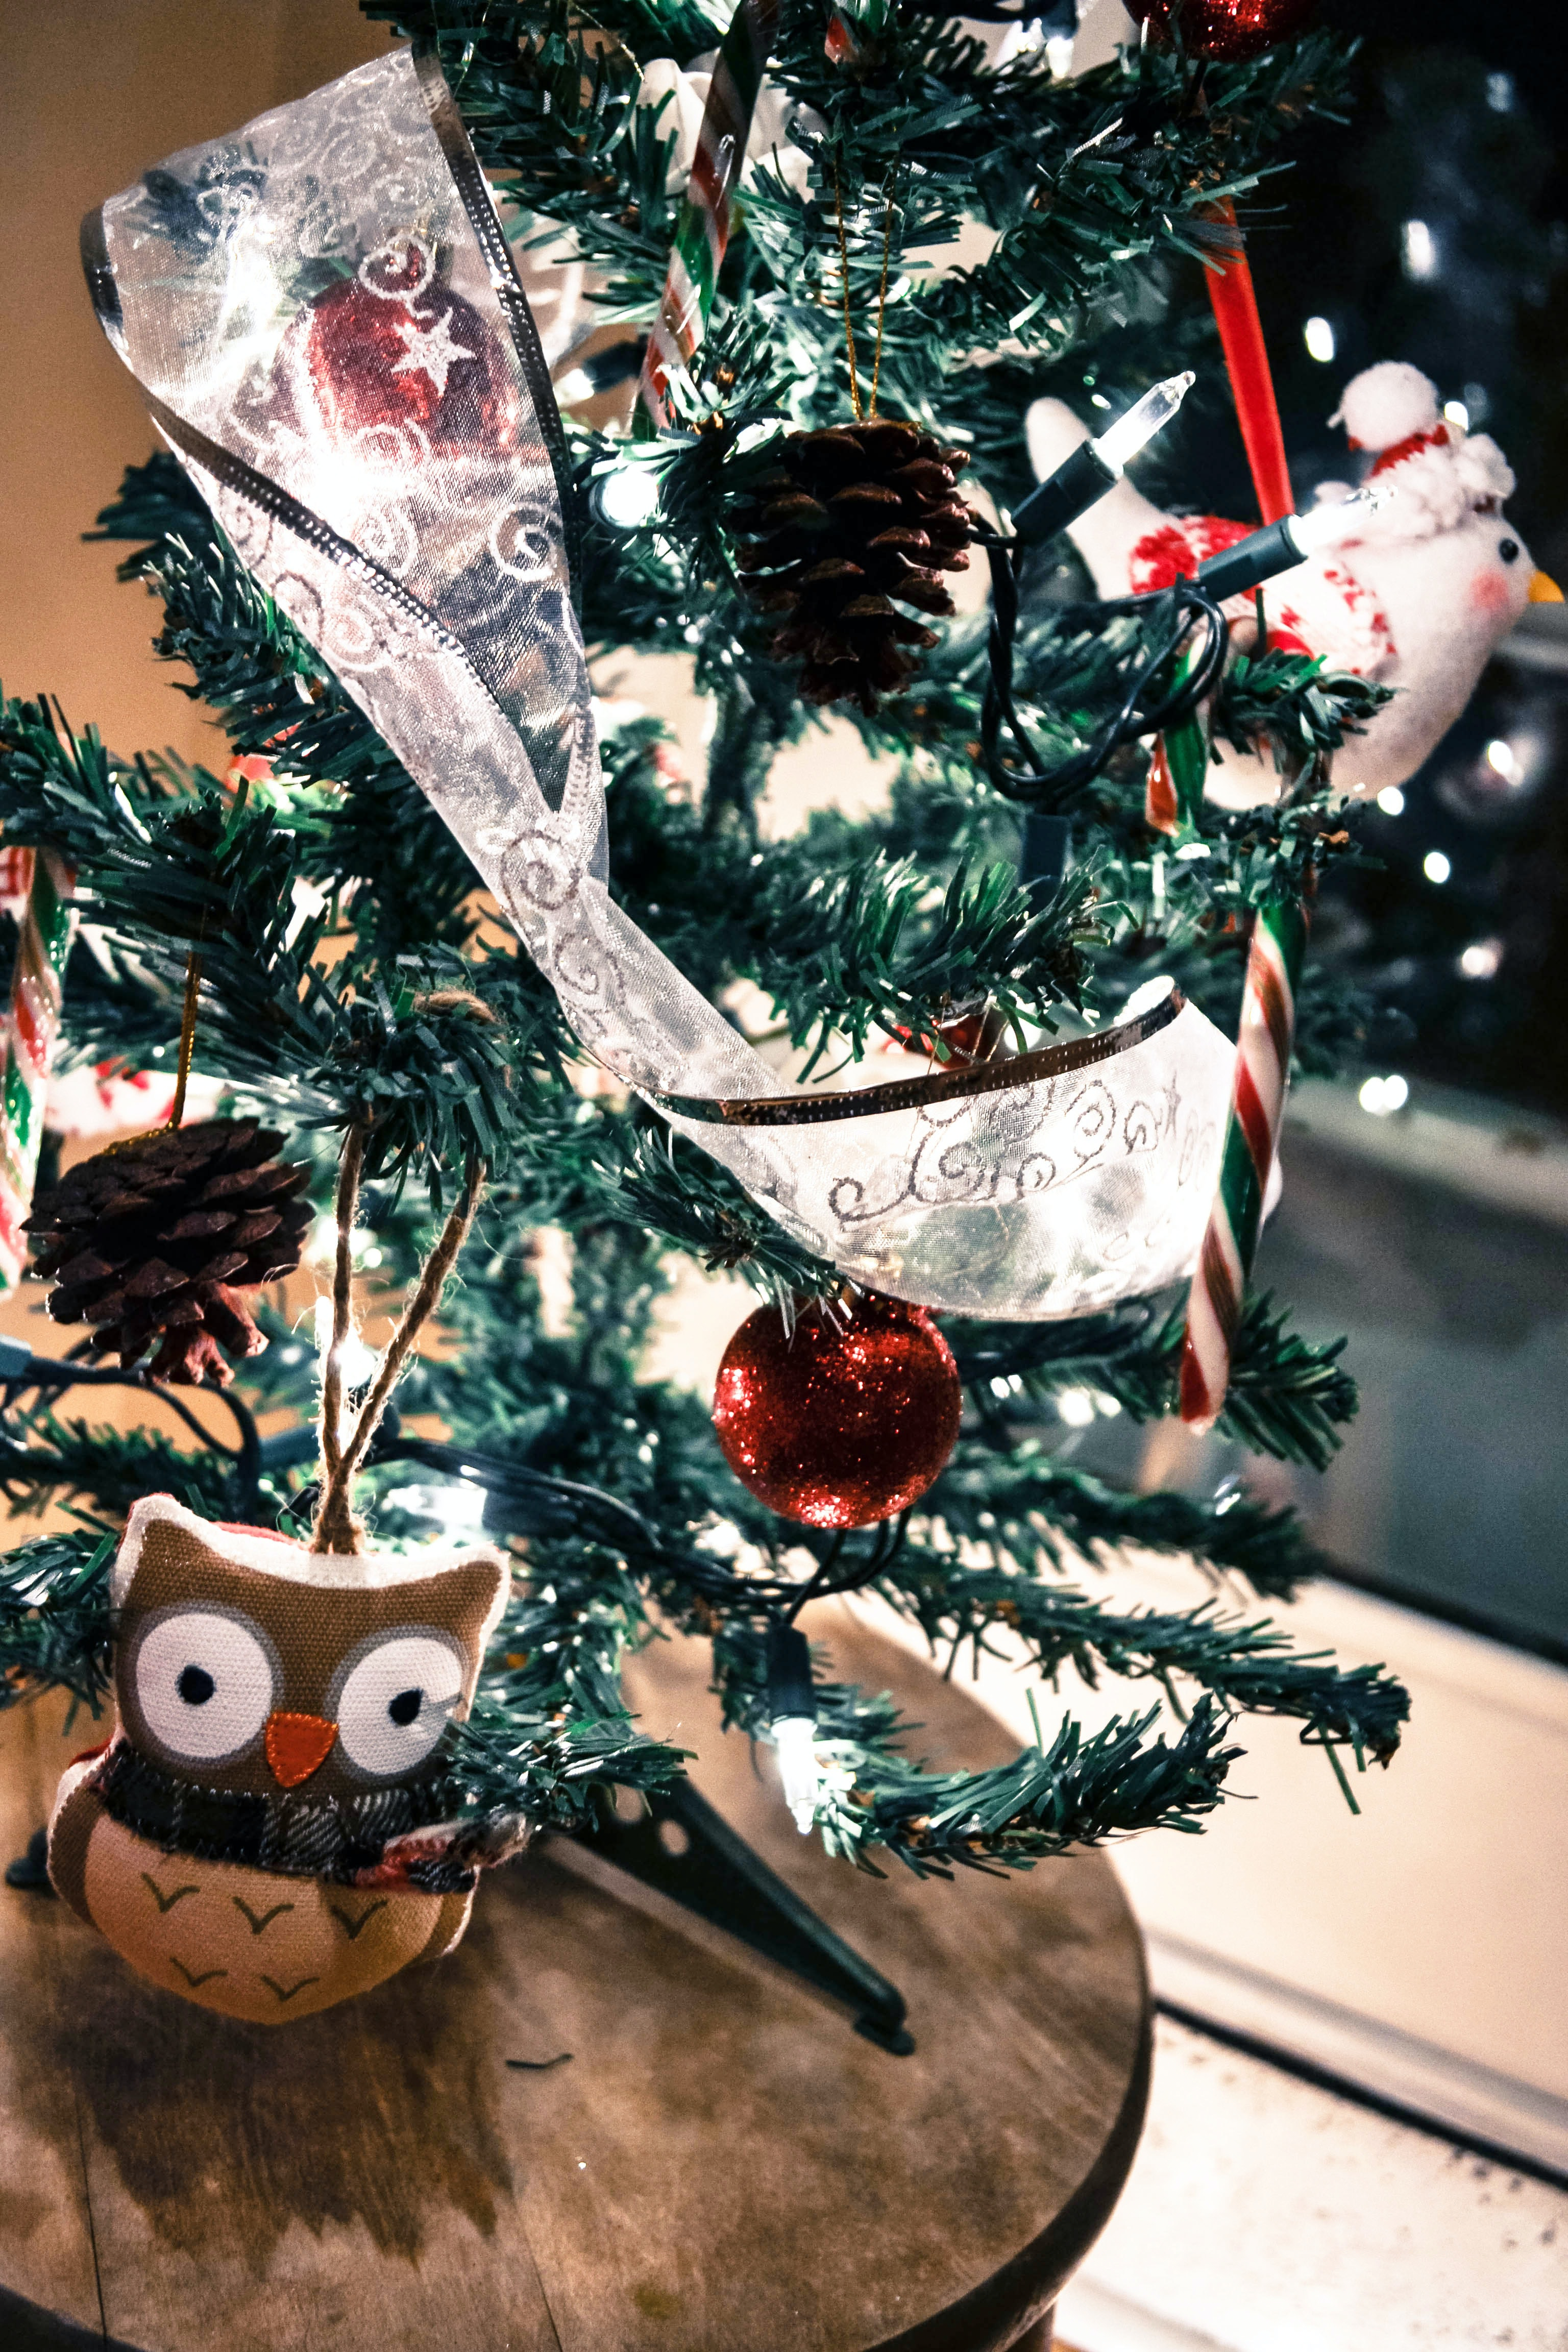 An owl sitting in front of a small Christmas tree.